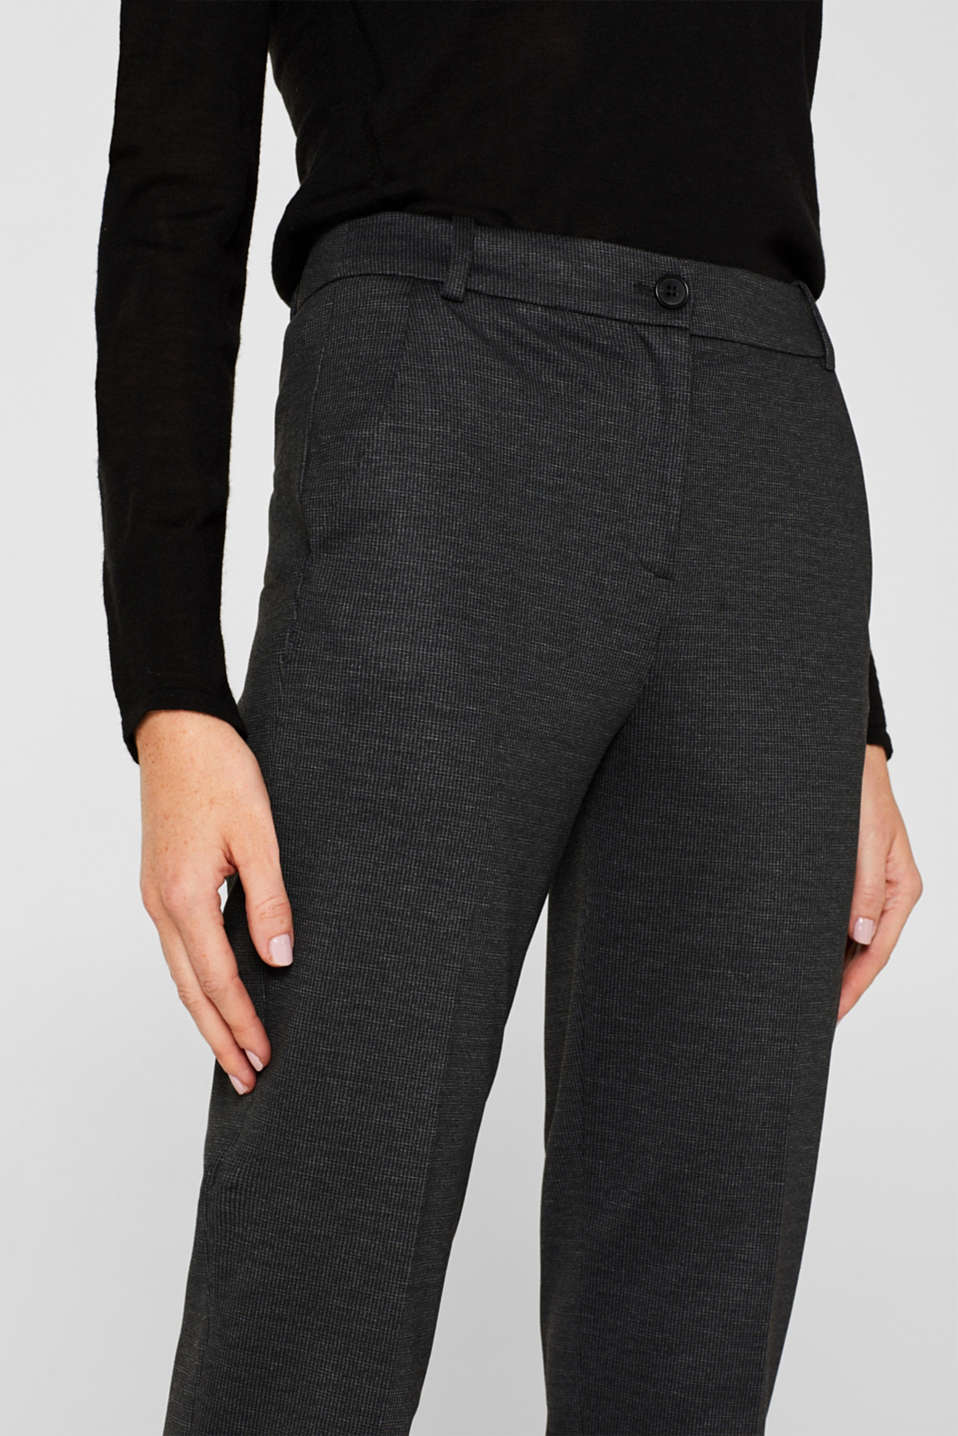 MINI CHECK Mix + Match stretch trousers, ANTHRACITE, detail image number 2